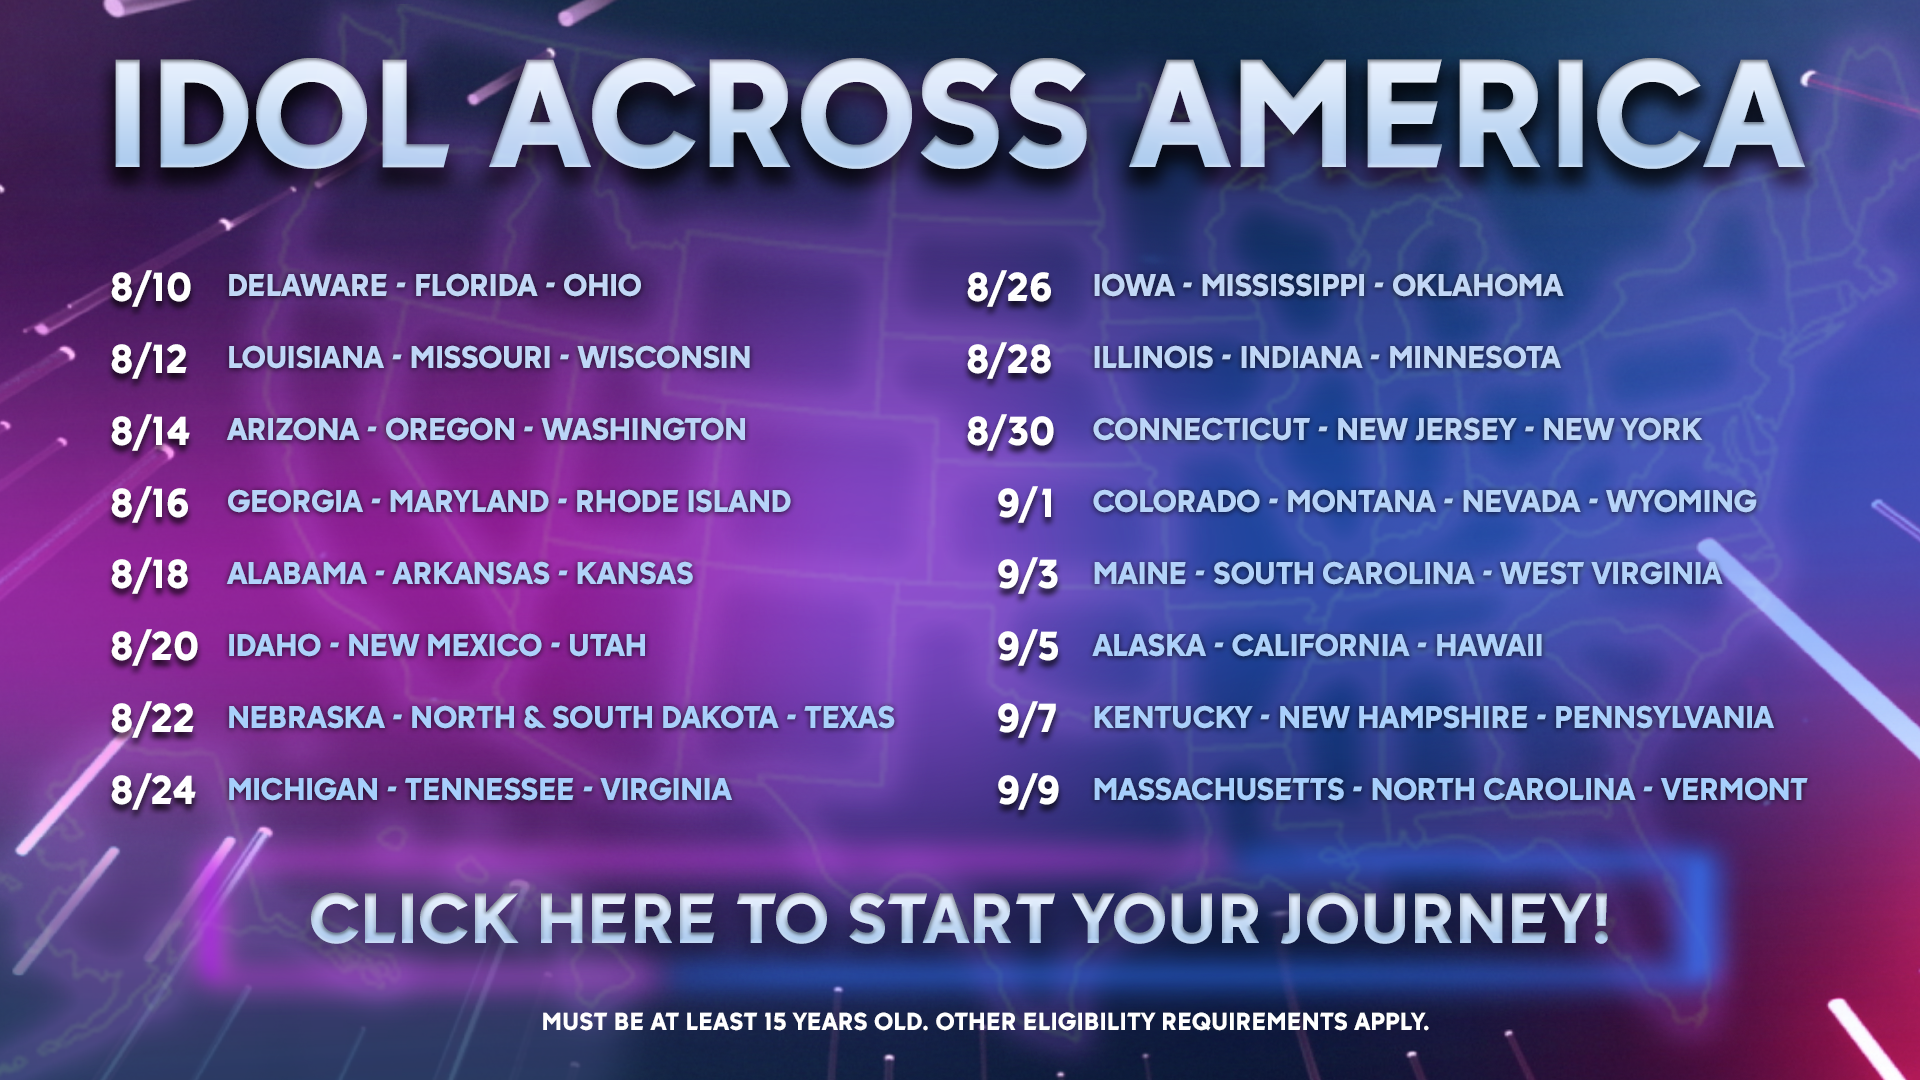 Idol Across America Virtual Tour: Sign Up Now! - American Idol